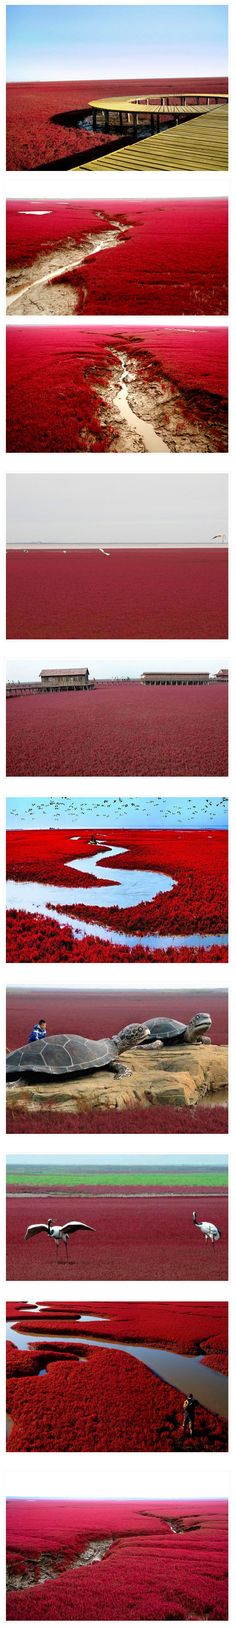 Red Beach Located in Liaohe River Delta China.